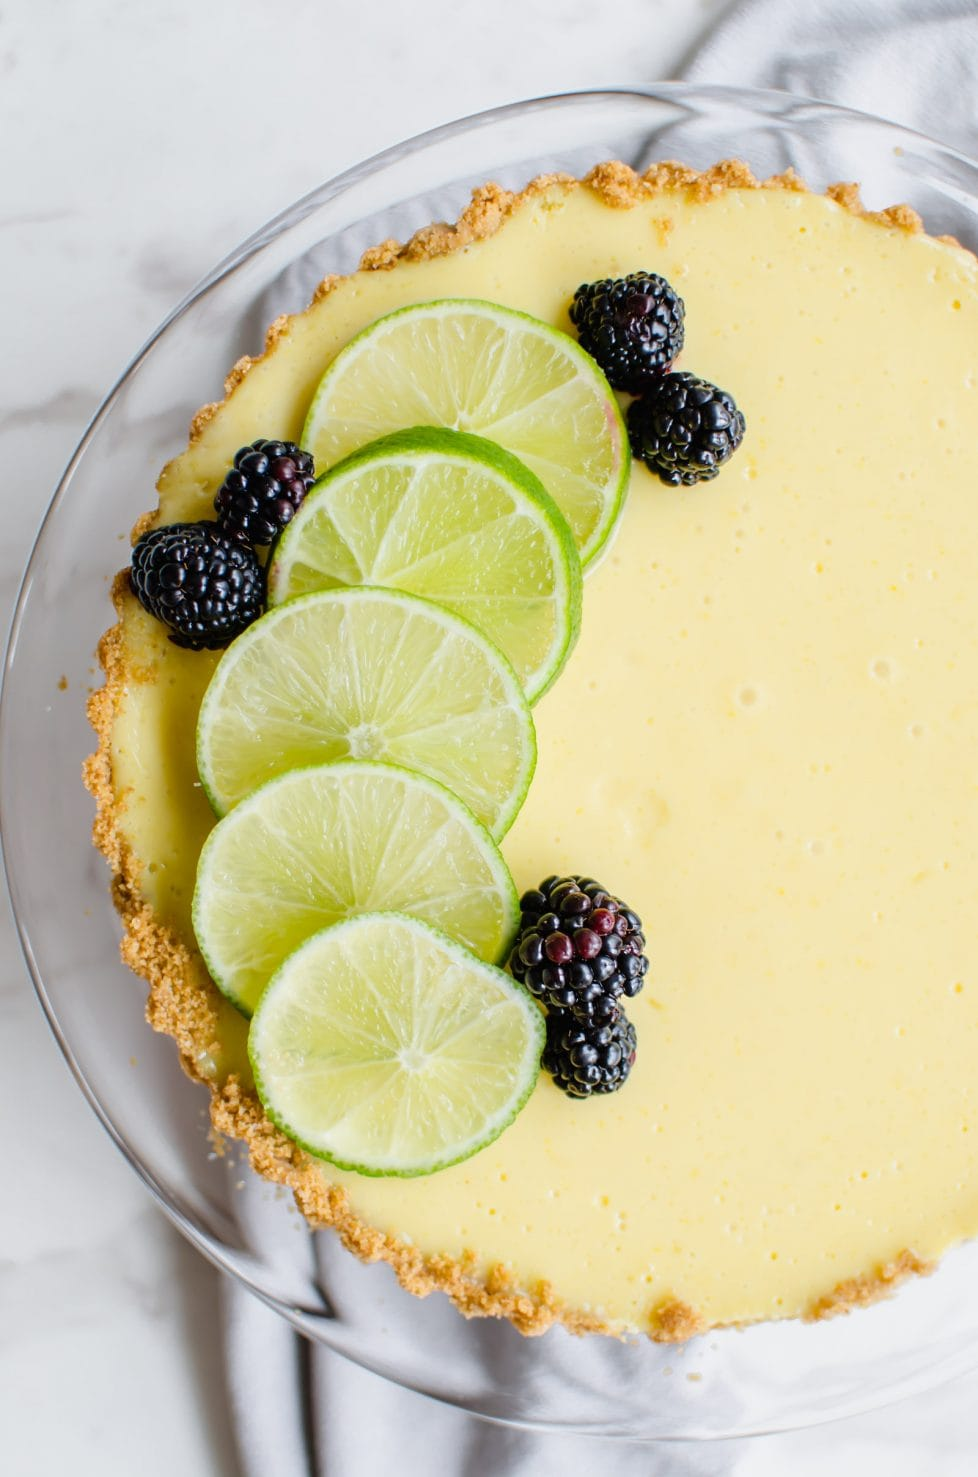 This recipe for a fresh lime tart has a buttery graham cracker crust and beautiful fresh blackberry sauce on top. It is very easy to make and would be perfect for St. Patrick's Day or Easter! #baking #sweetcayenne